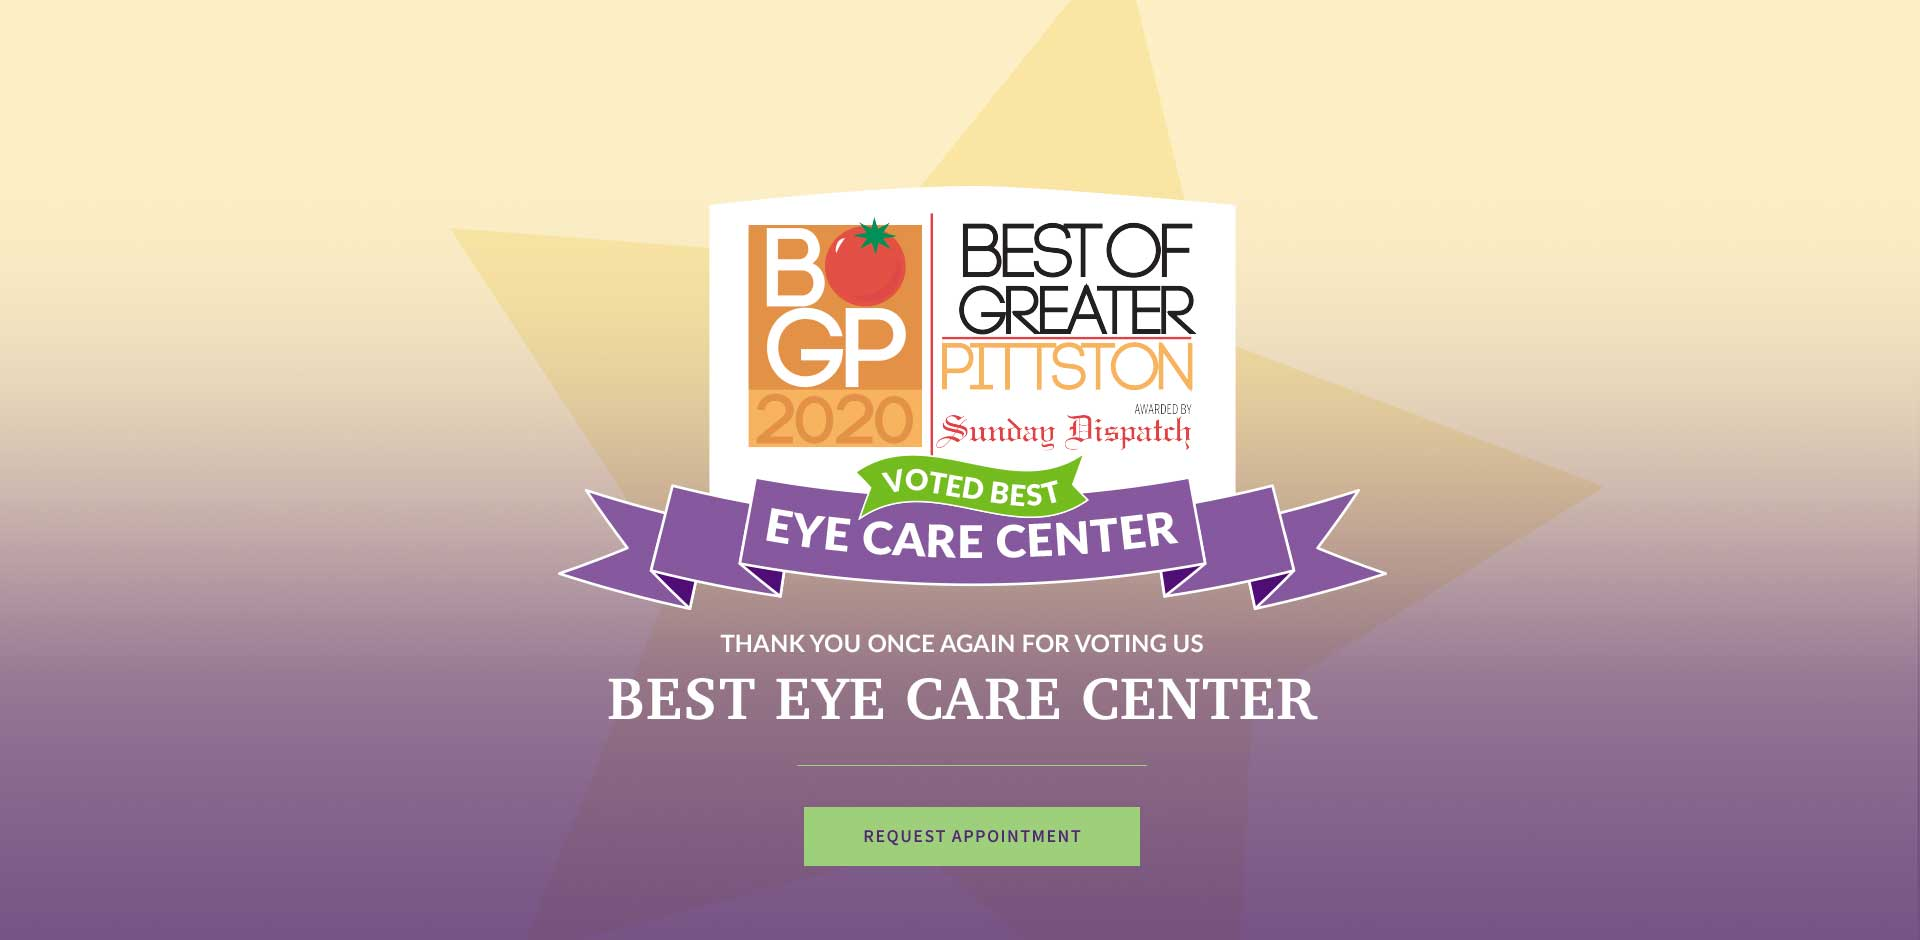 Thank you for voting us Best Eye Care Center